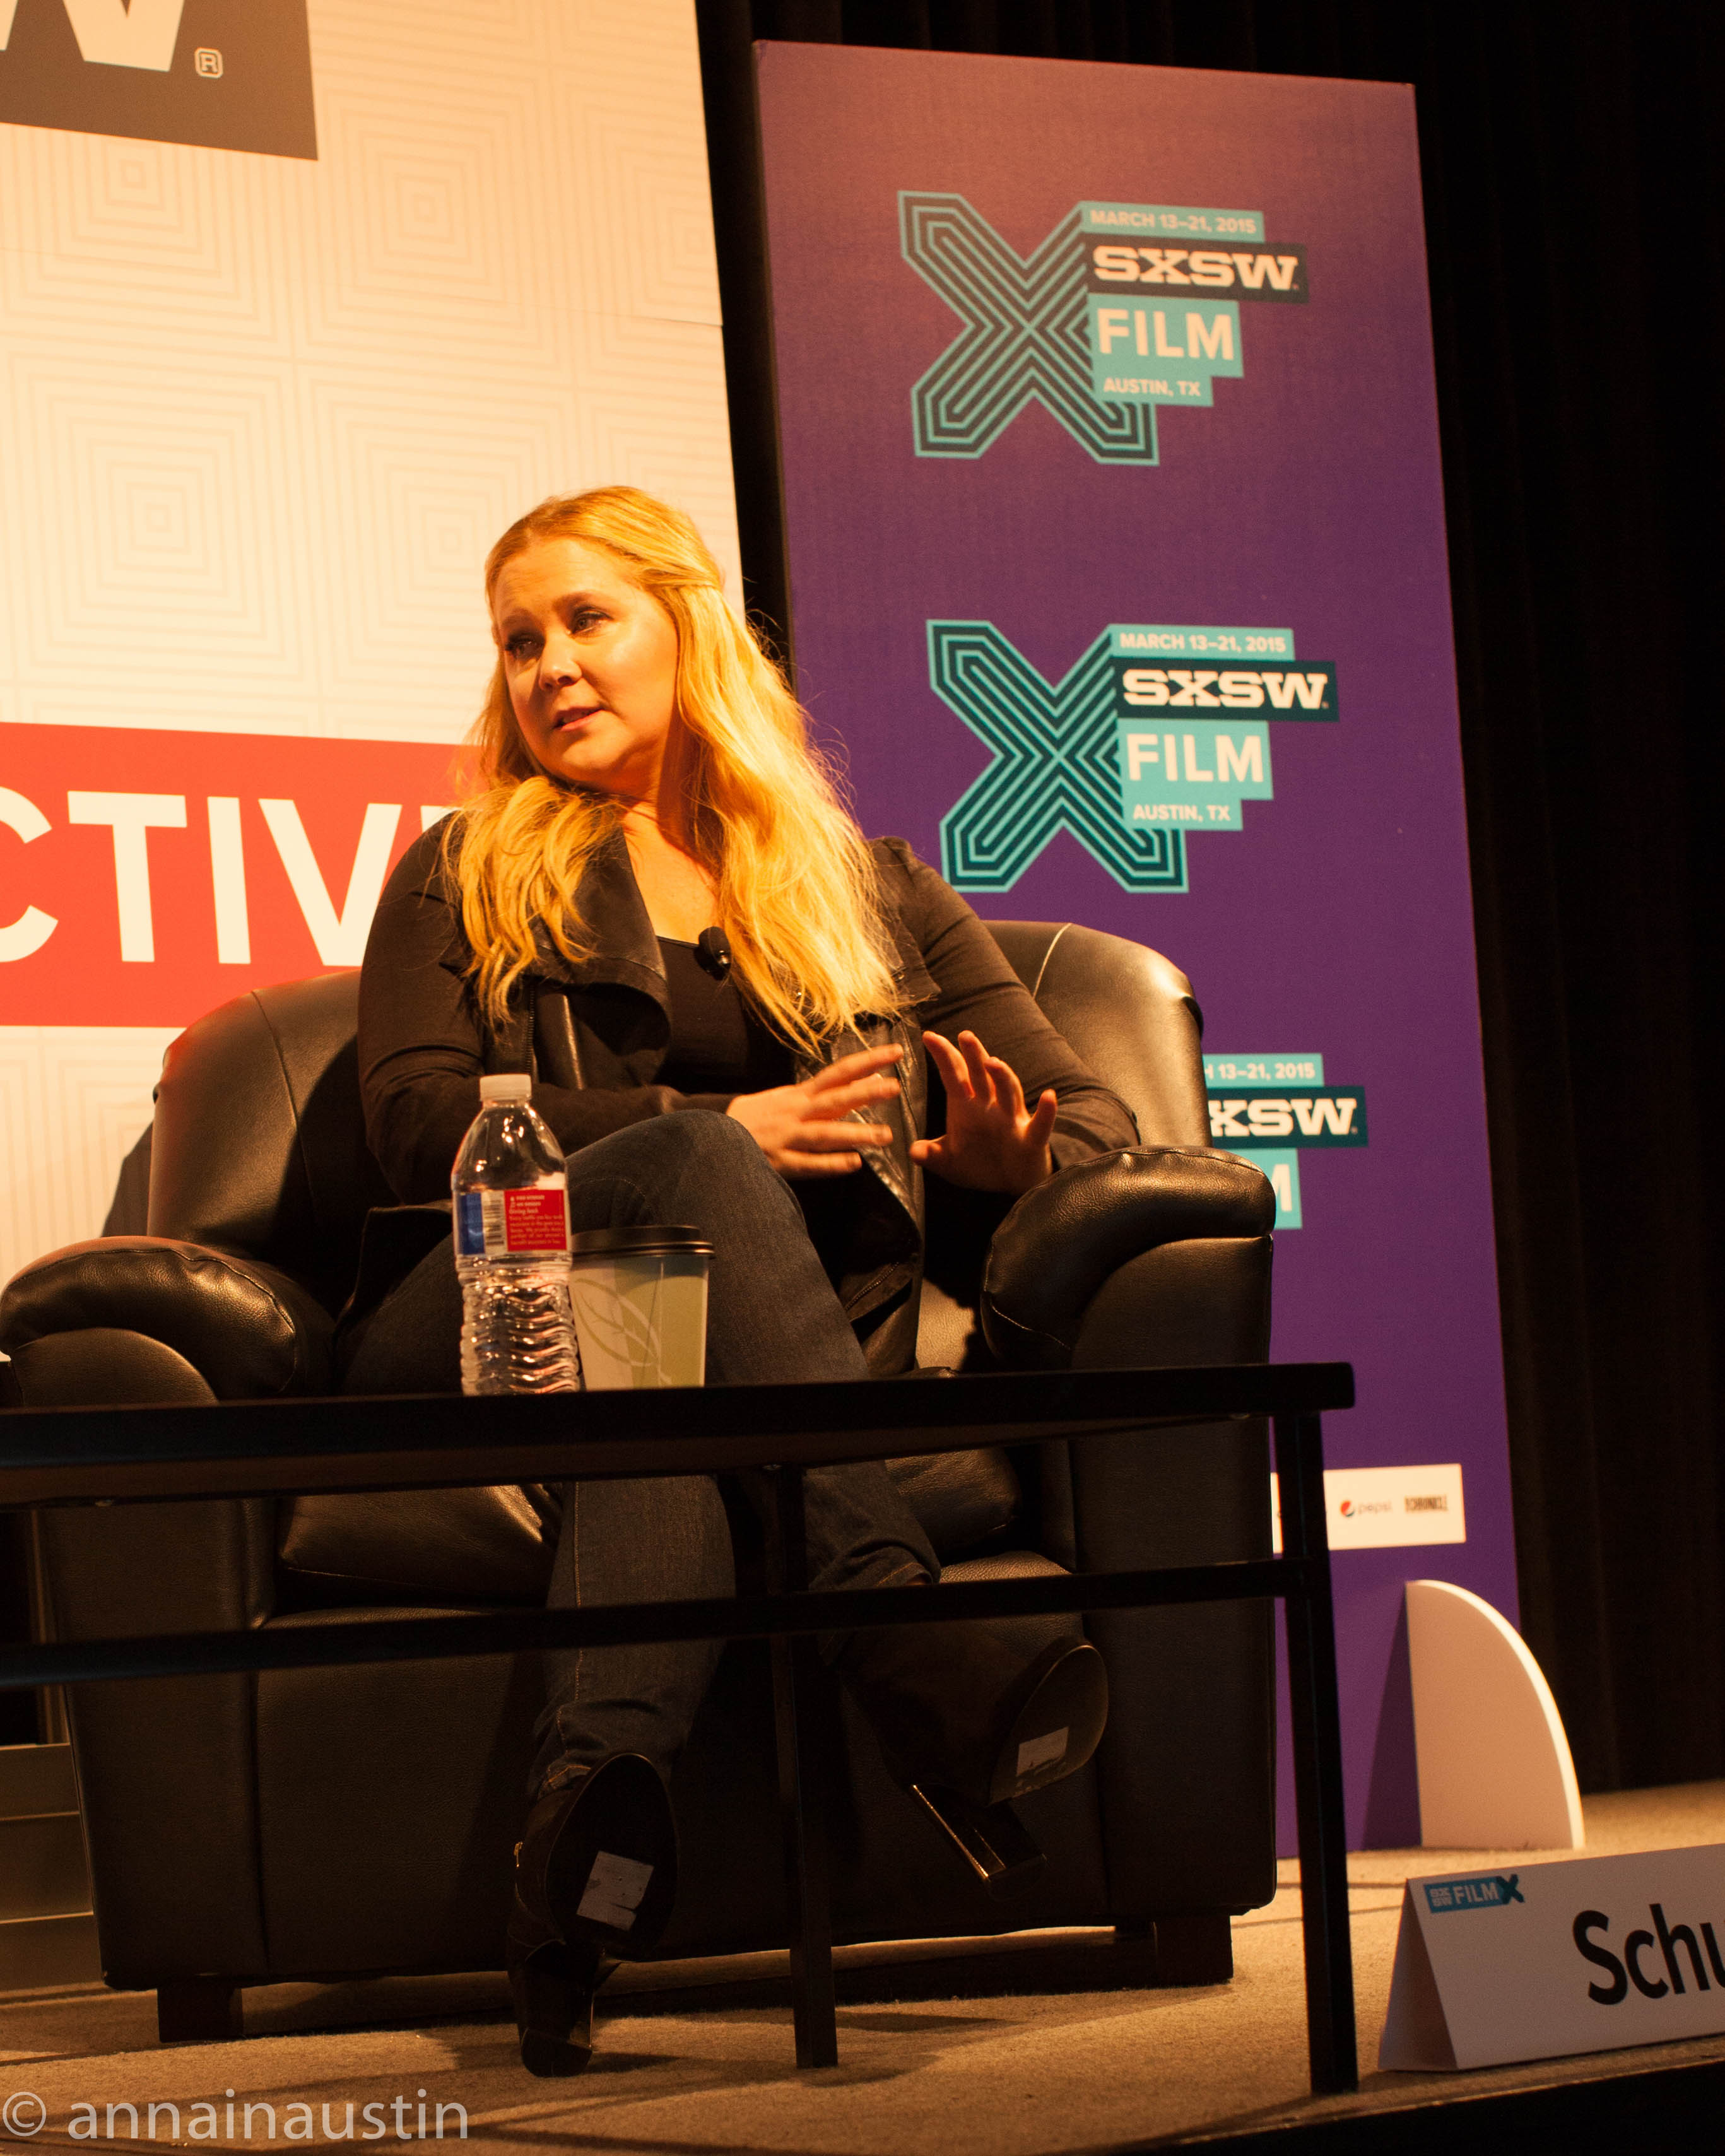 Amy Schumer at 2015 SXSW on March 16, 2015. I Photo; Anna Hanks (@annaustin), Amy Schumer SXSW One, CC BY 2.0